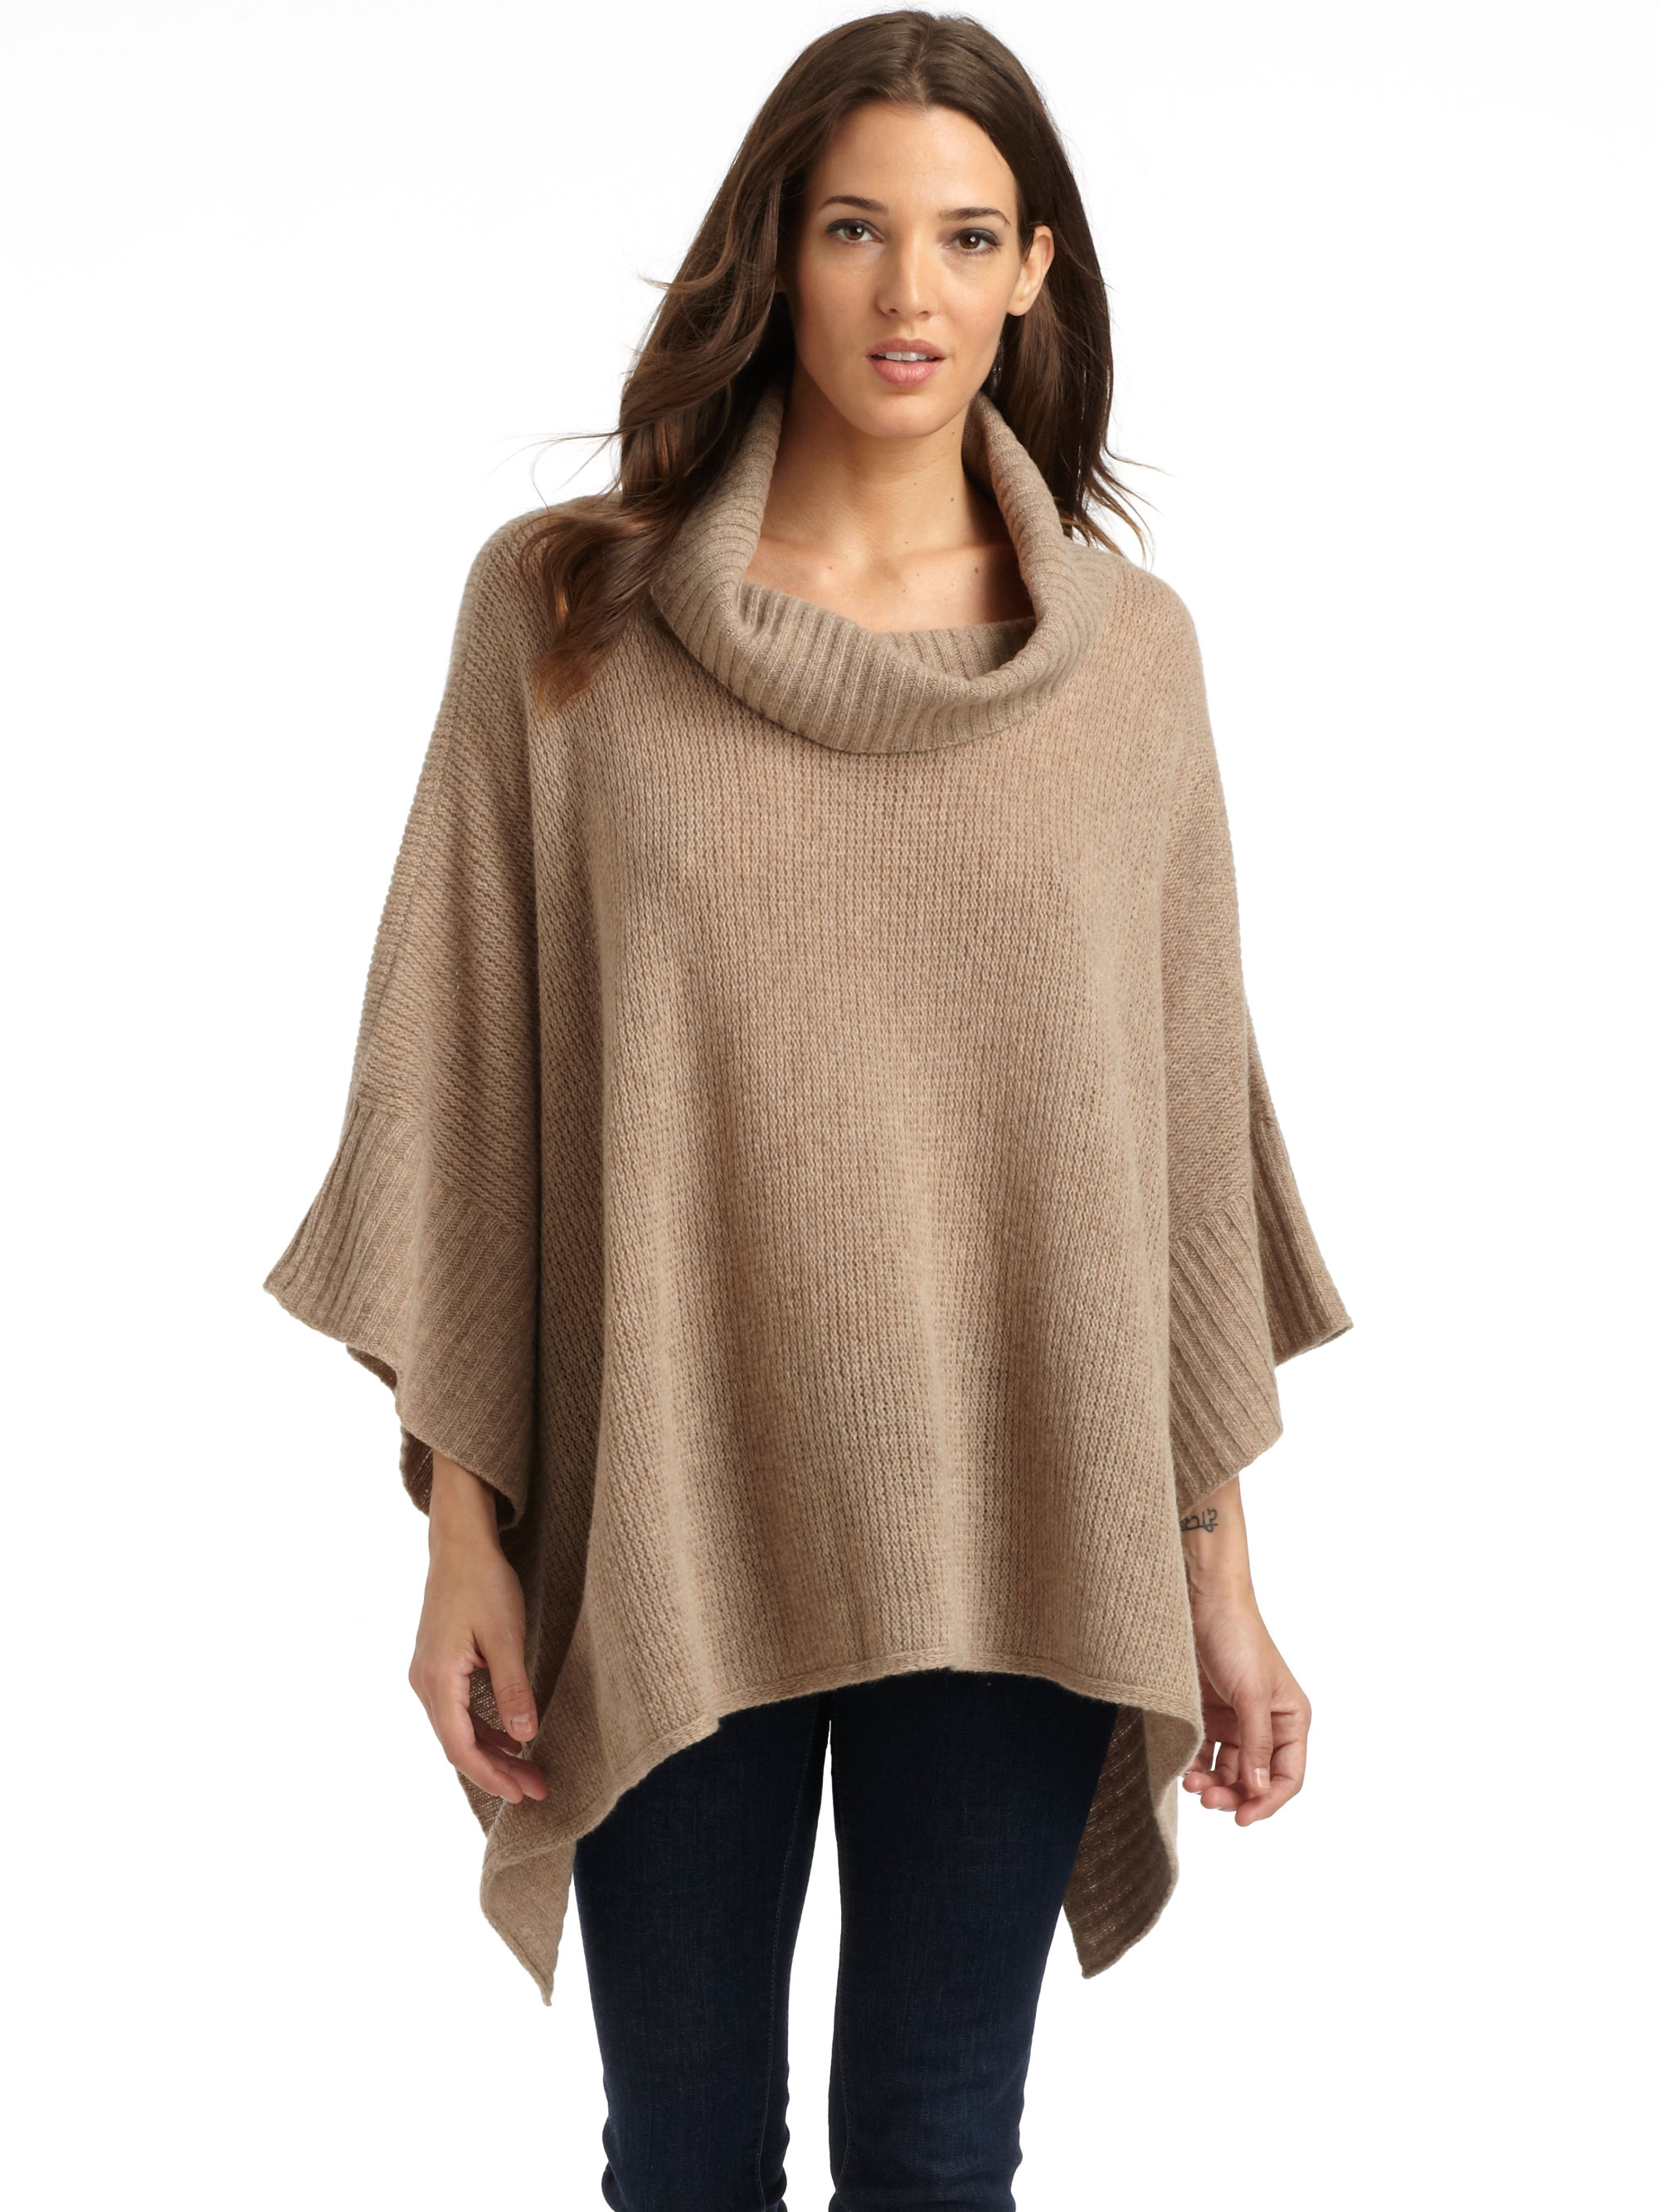 Shop all cozy cashmere, rich, soft alpaca, wool blends, or comfy cottons, we offer it all in open wrap sweaters, crewnecks, cable knits, v-necks, cropped jumpers, oversized sweaters, grandfather cardigans, classic turtlenecks and more.